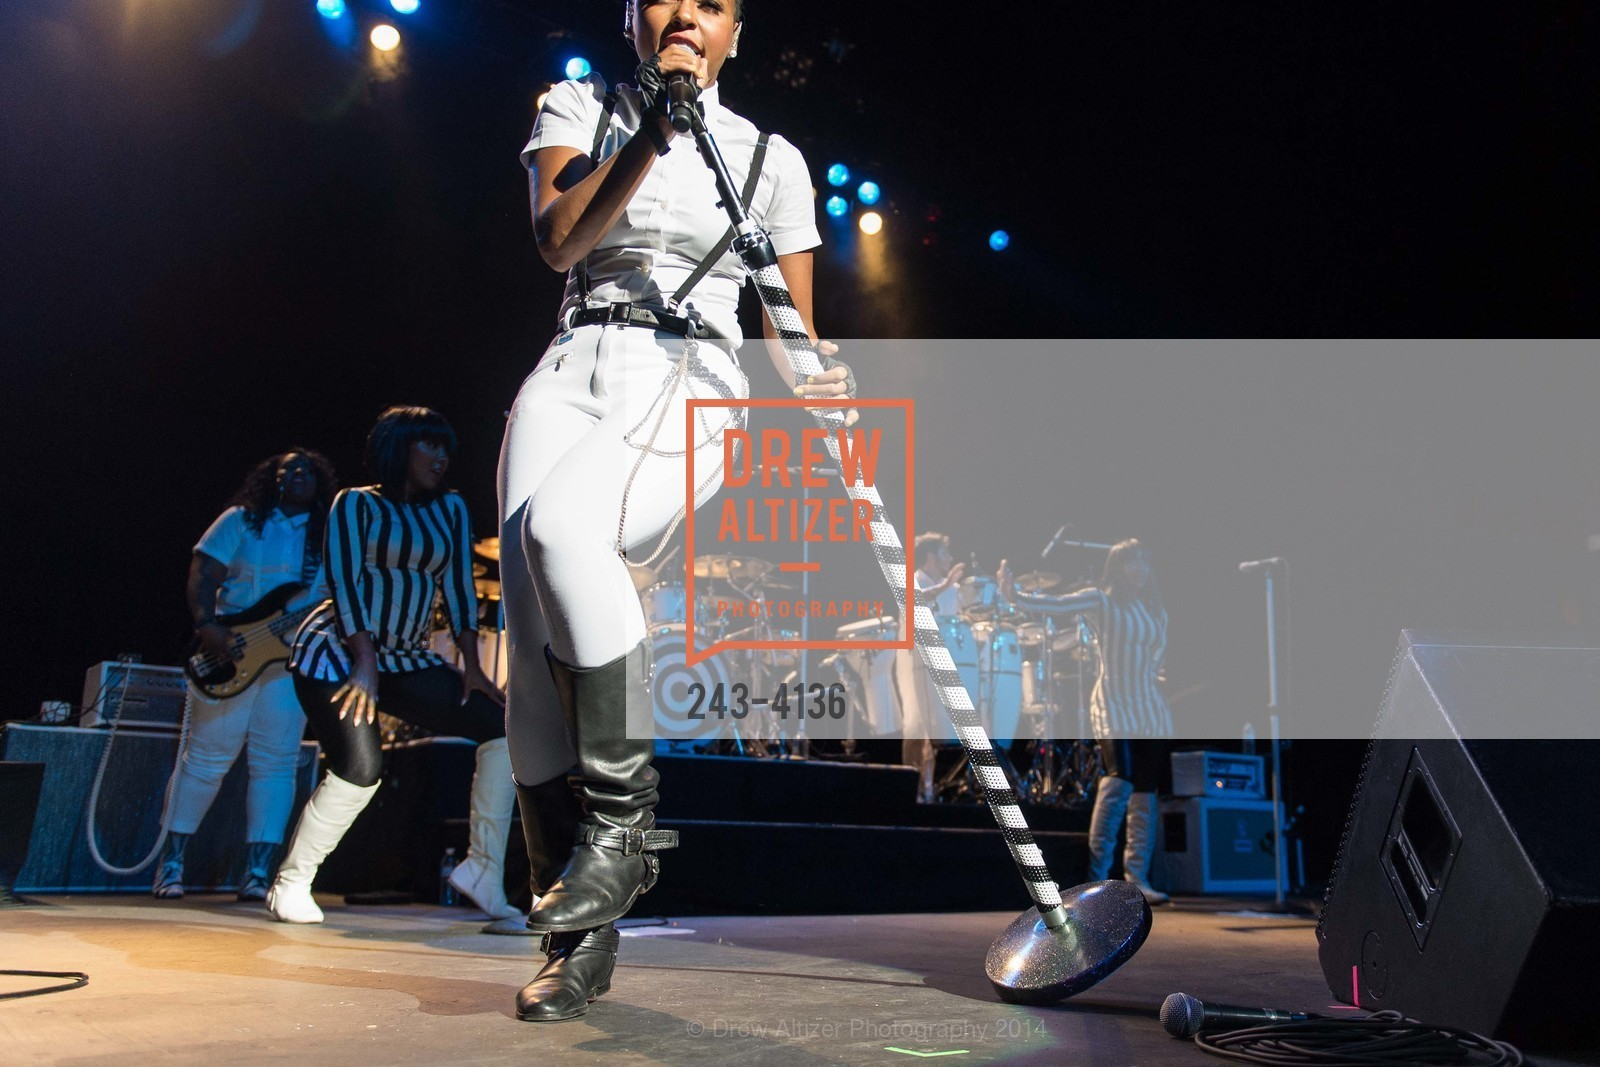 Performance By Janelle Monae, Photo #243-4136